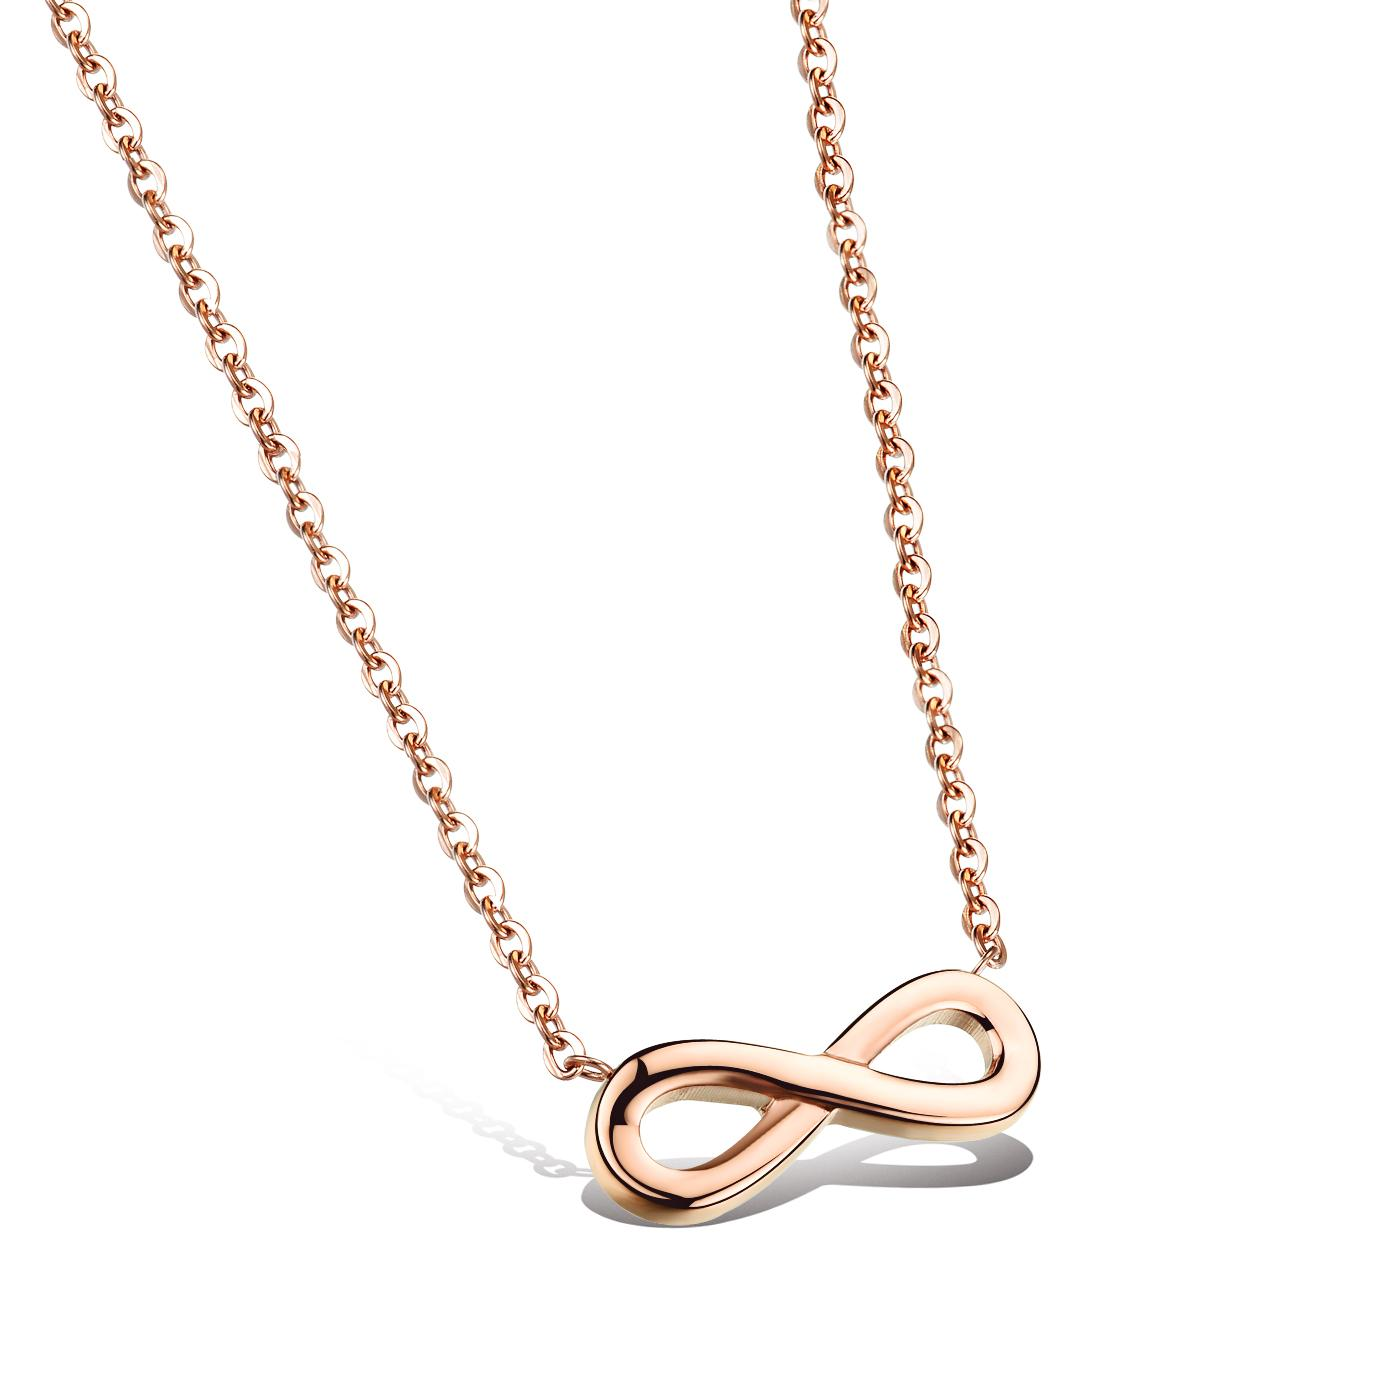 gold necklace for women fashion simple rose gold infinity symbol pendant necklaces women chain  infinity charms necklace eternity ktthfqh